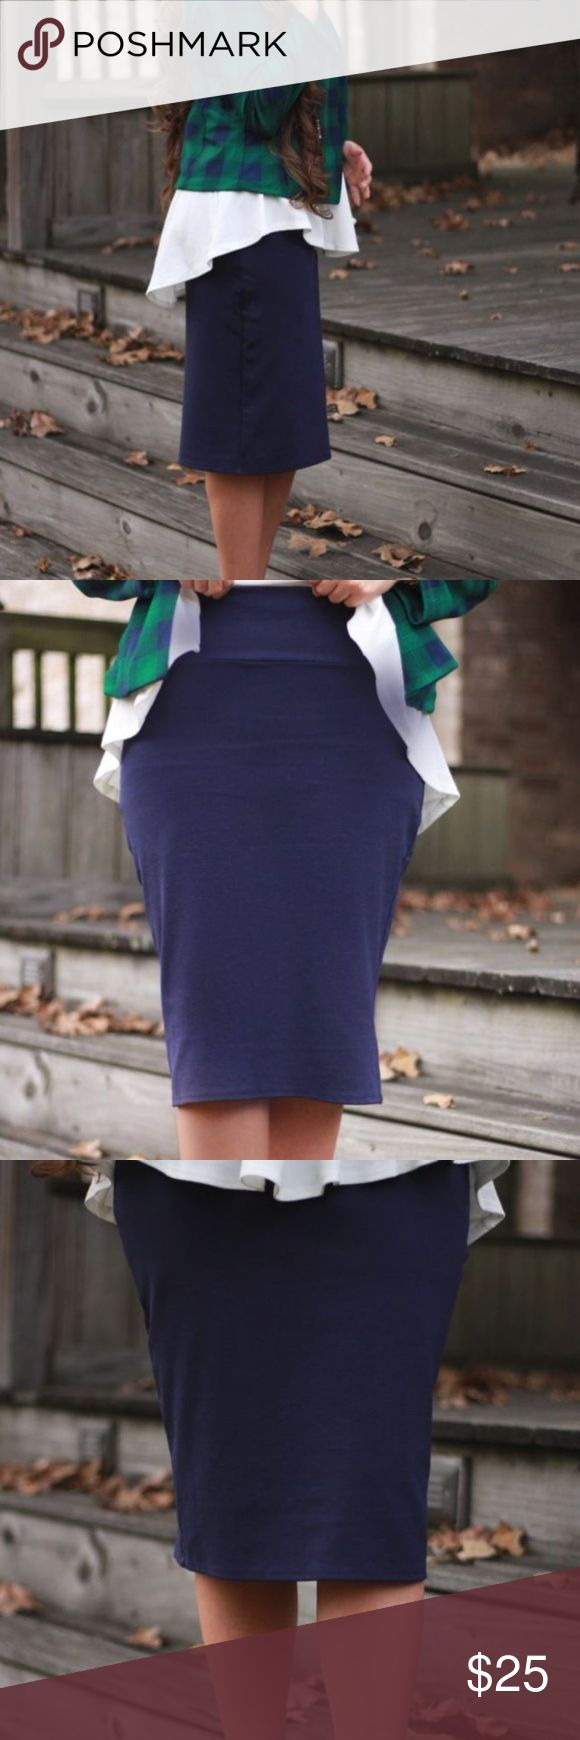 High Quality Navy Pencil Skirt Made of comfortable, stretchy material with no slits or zippers. Skirts Pencil